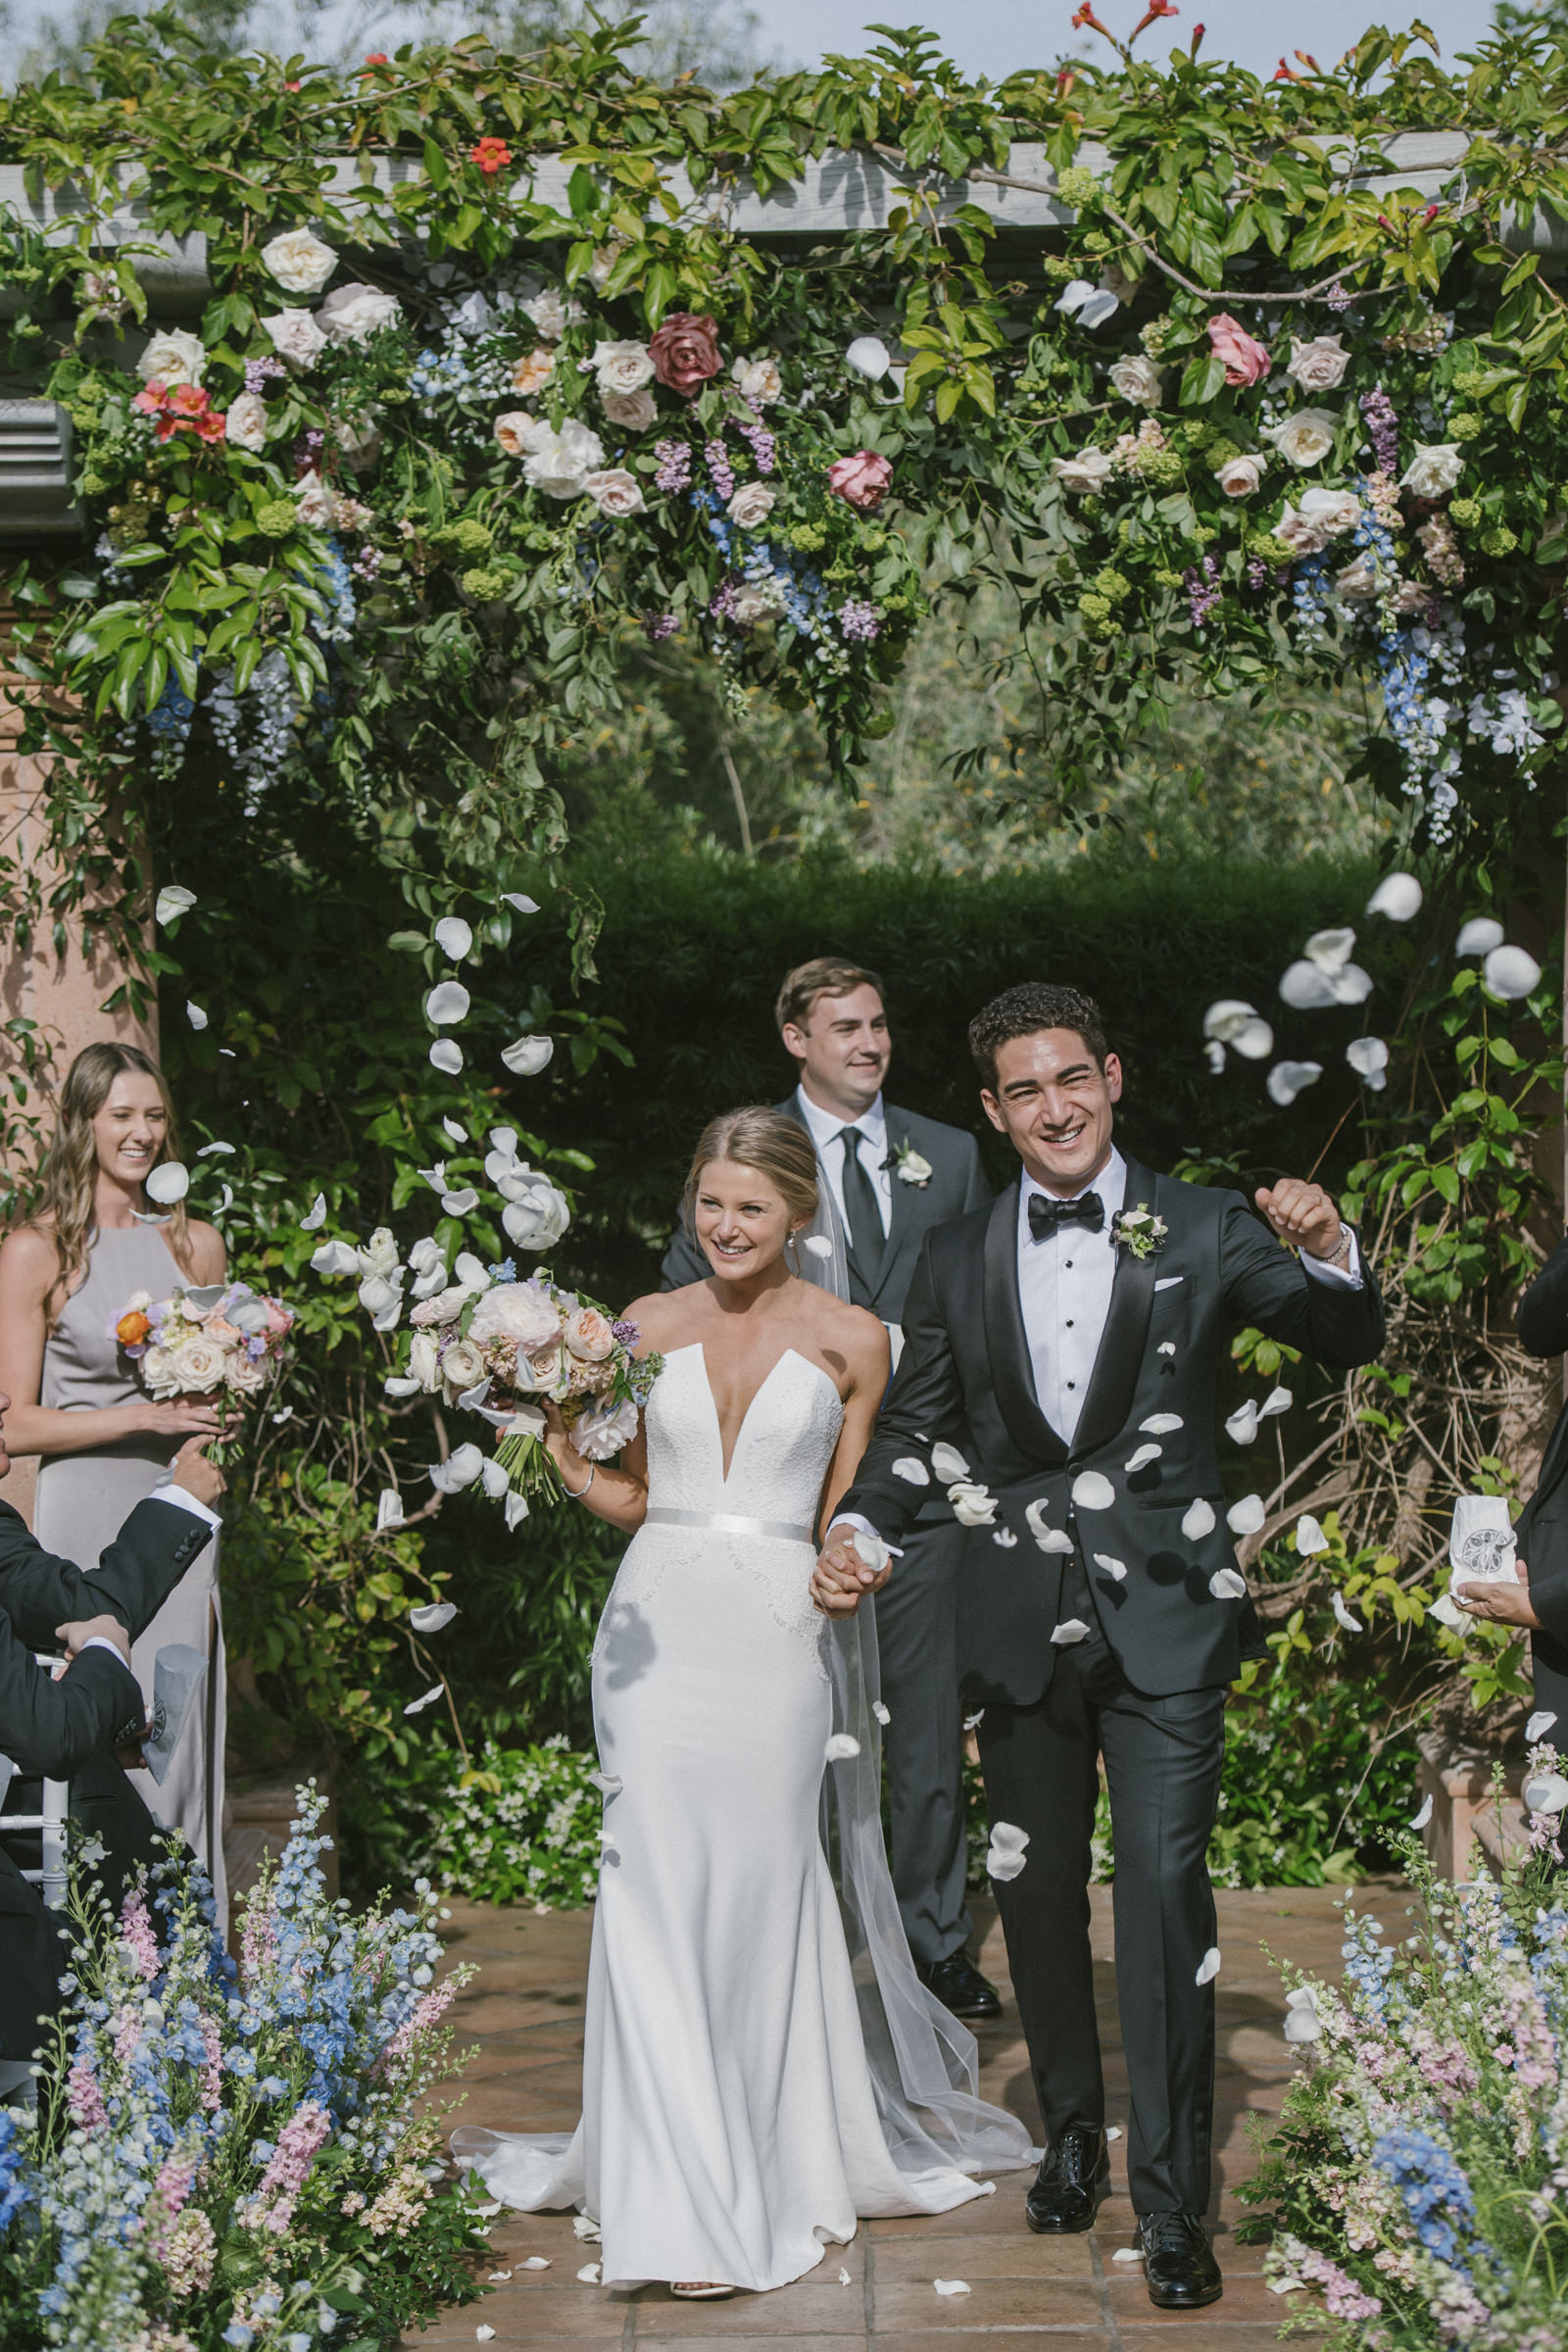 Bride and groom walk in floral aisle - photo by Amy and Stuart Photography